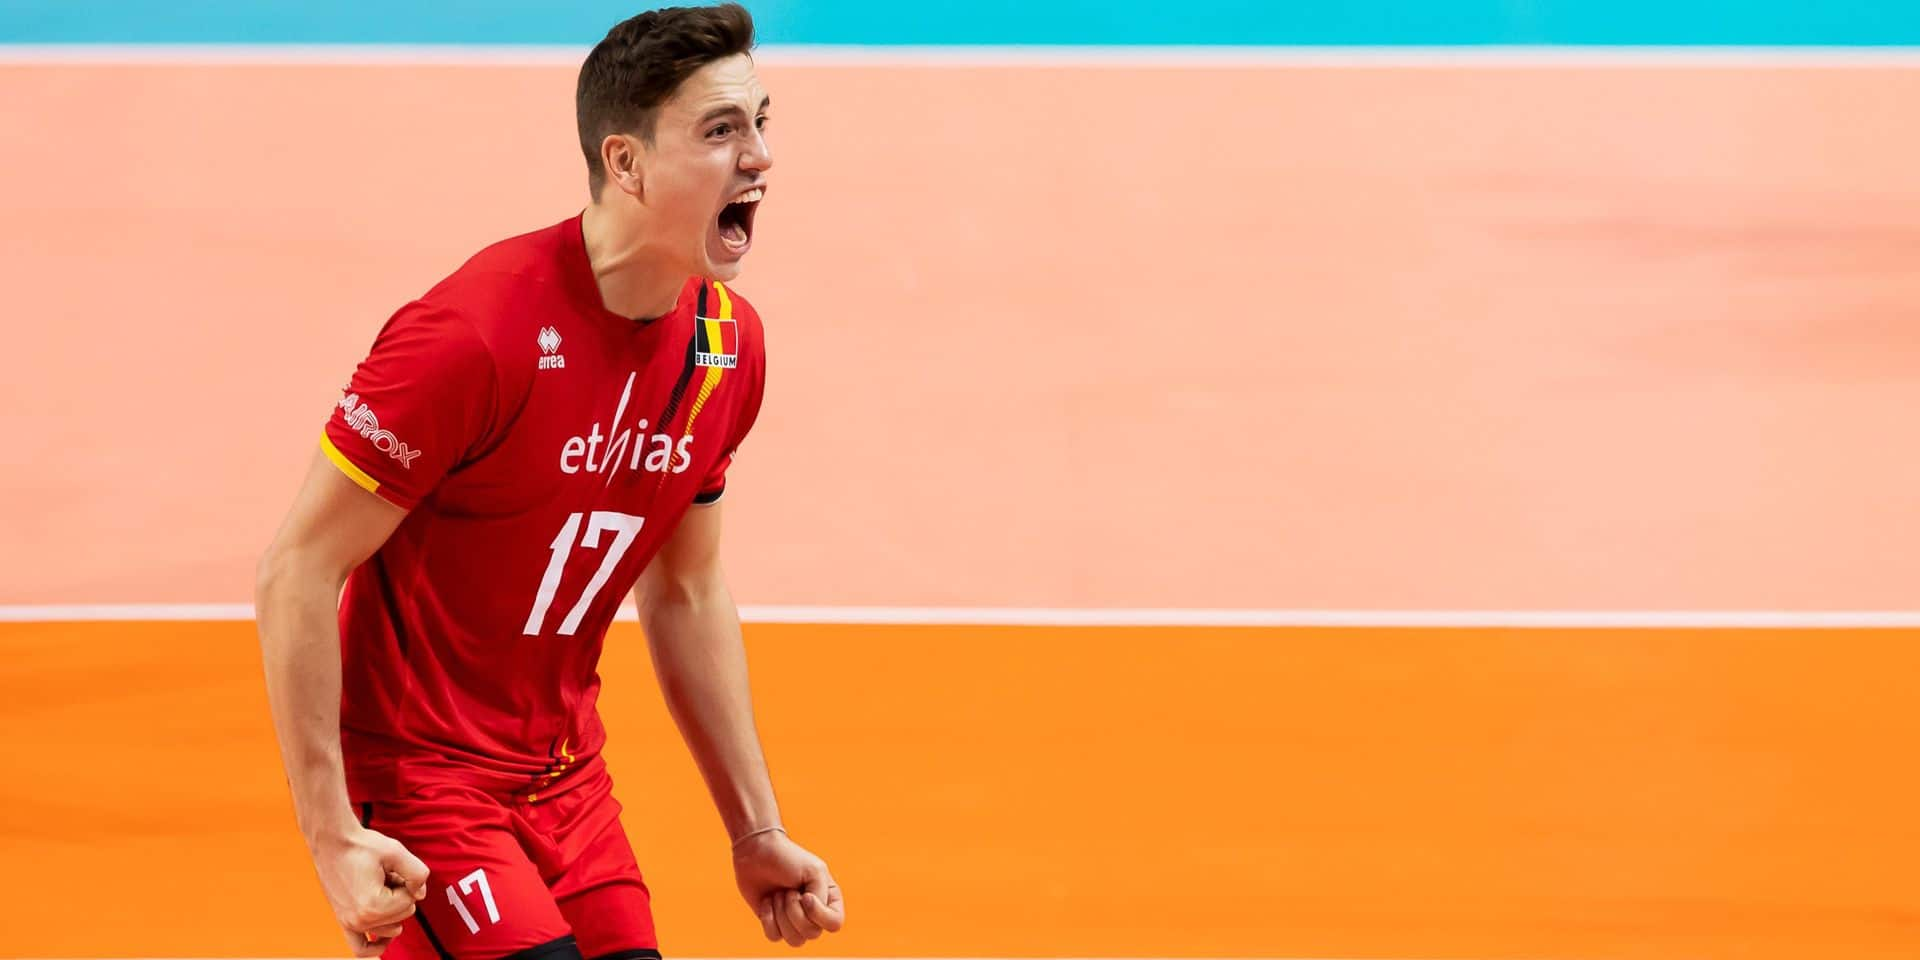 Belgium's Tomas Rousseaux celebrates during a group B game between the Red Dragons, Belgian national volleyball team and Austria, at the European volleyball championships, Friday 13 September 2019, in Brussels. BELGA PHOTO KRISTOF VAN ACCOM